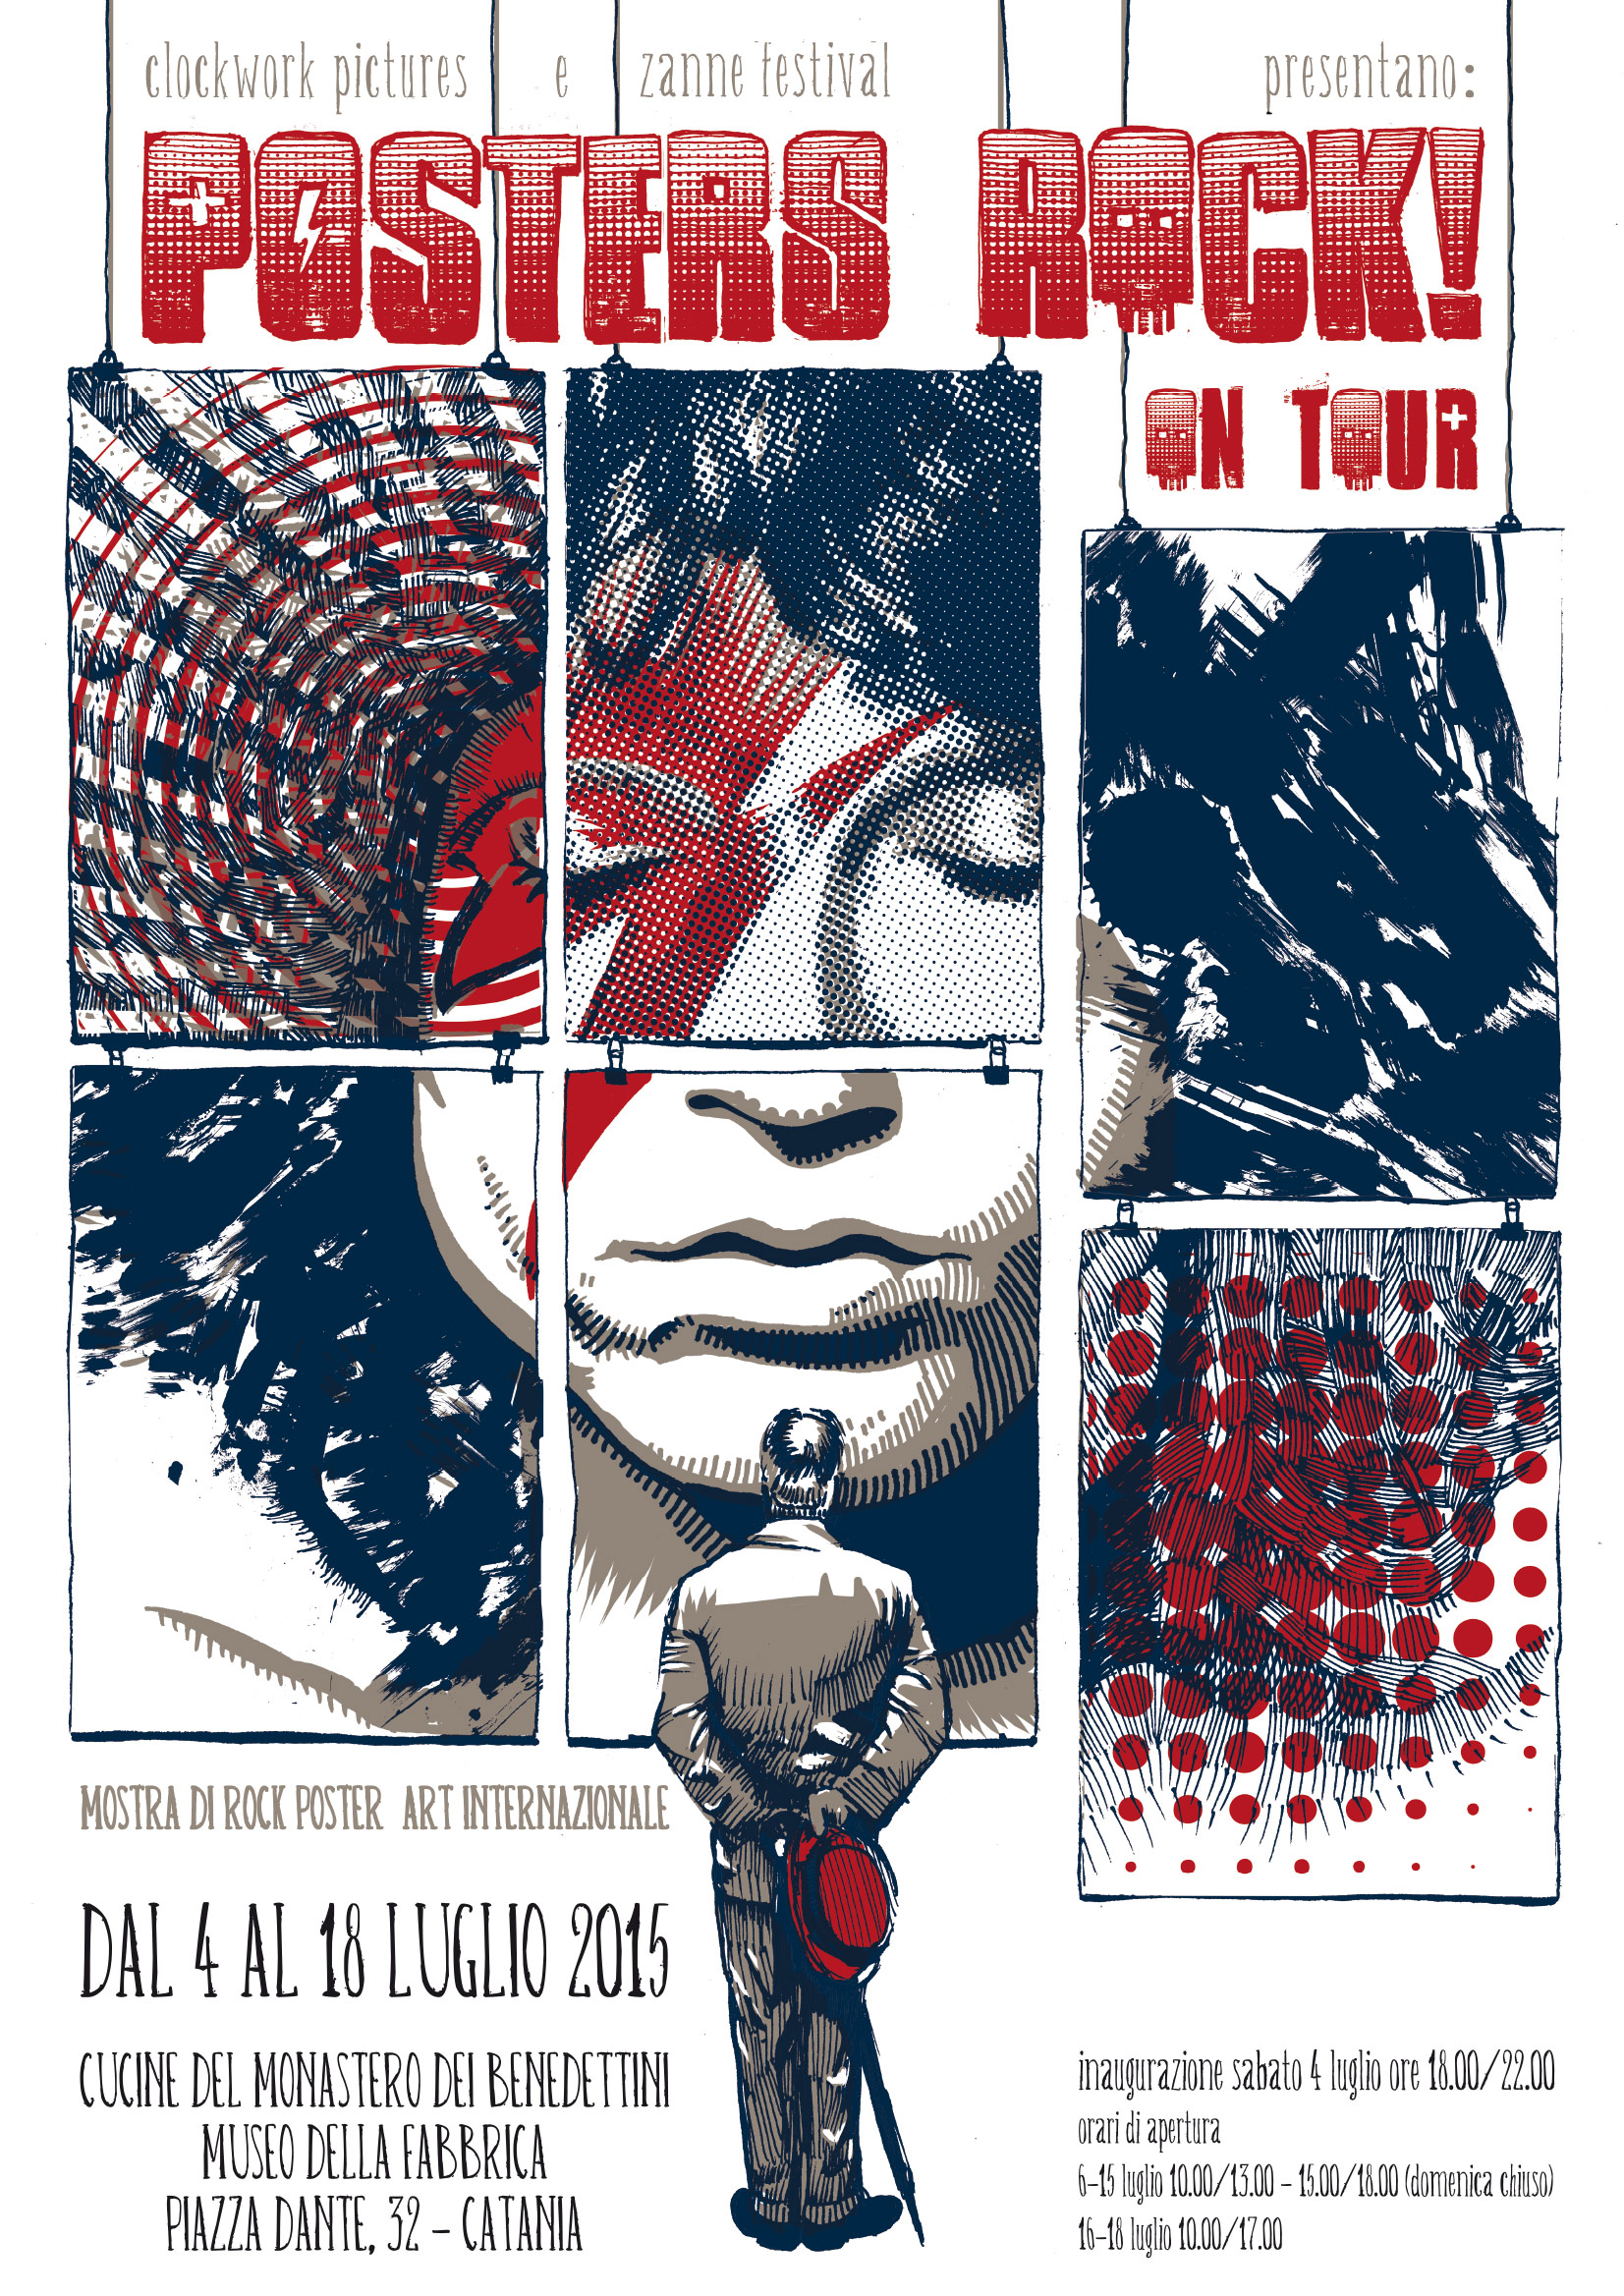 the abundant exhibition of important serigraphs dedicated to rock music will be open from monday to saturday and entry is free of charge